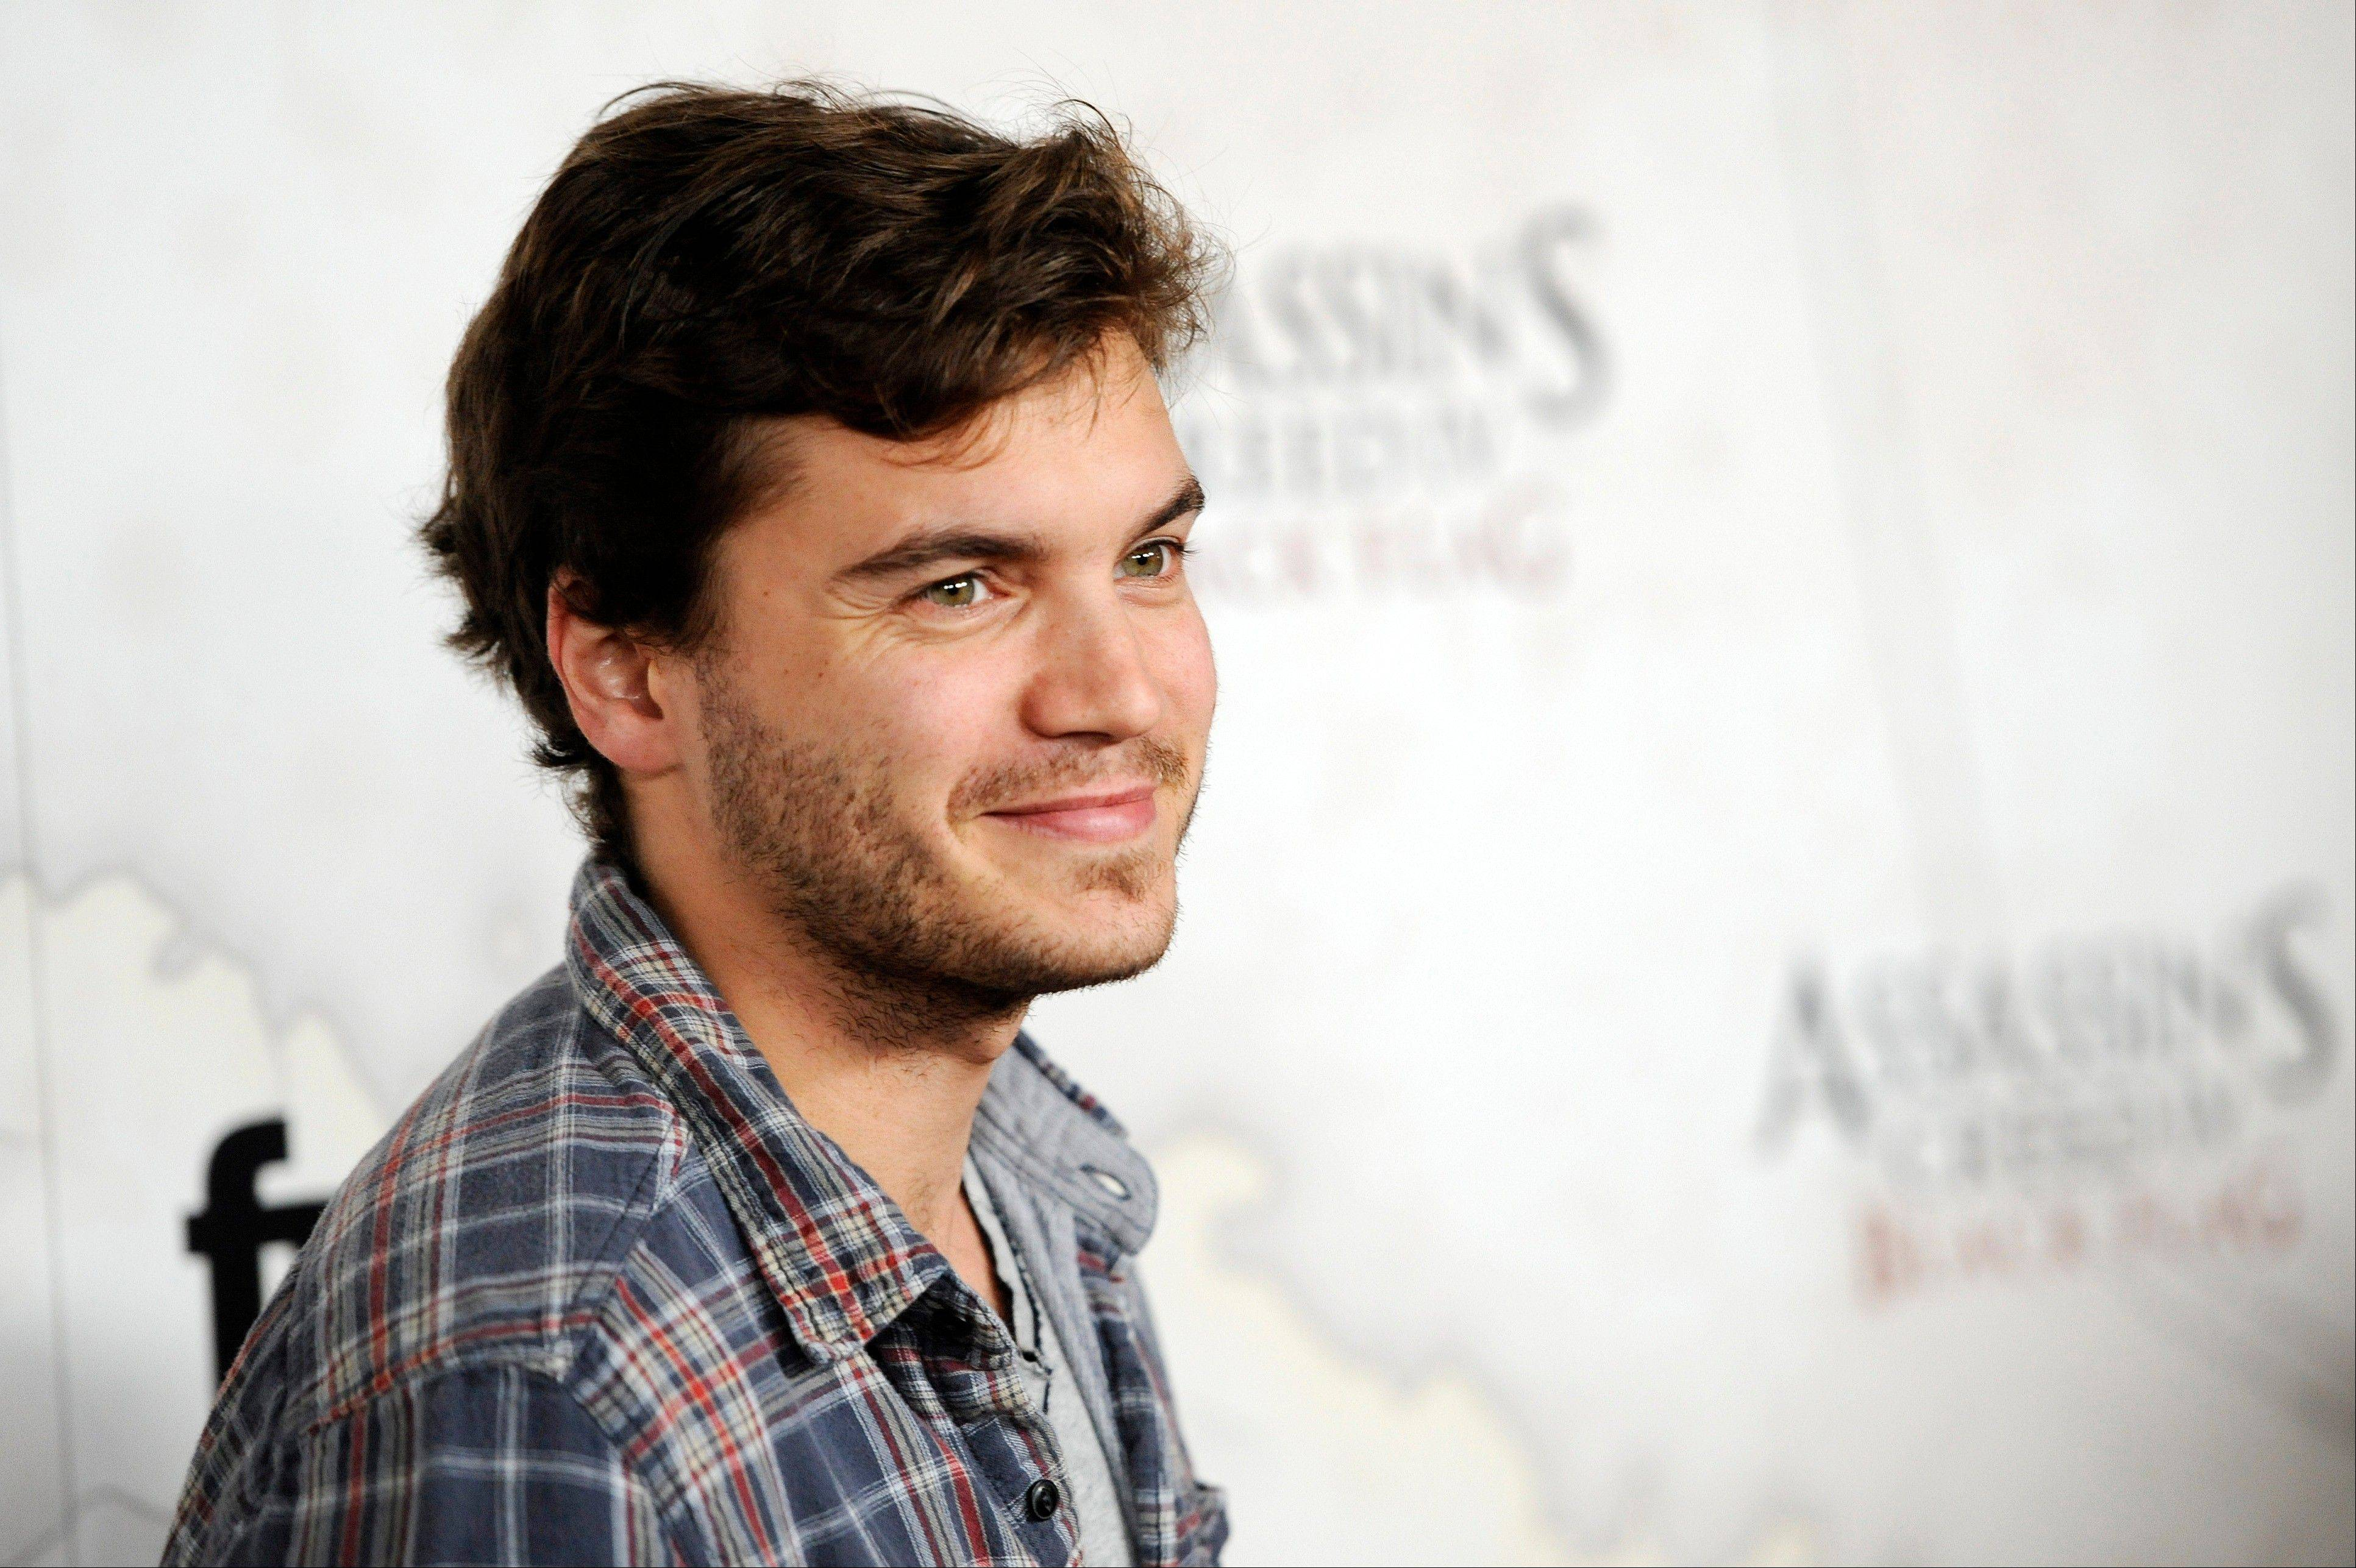 Emile Hirsch will play John Belushi in a biopic on the comedian.